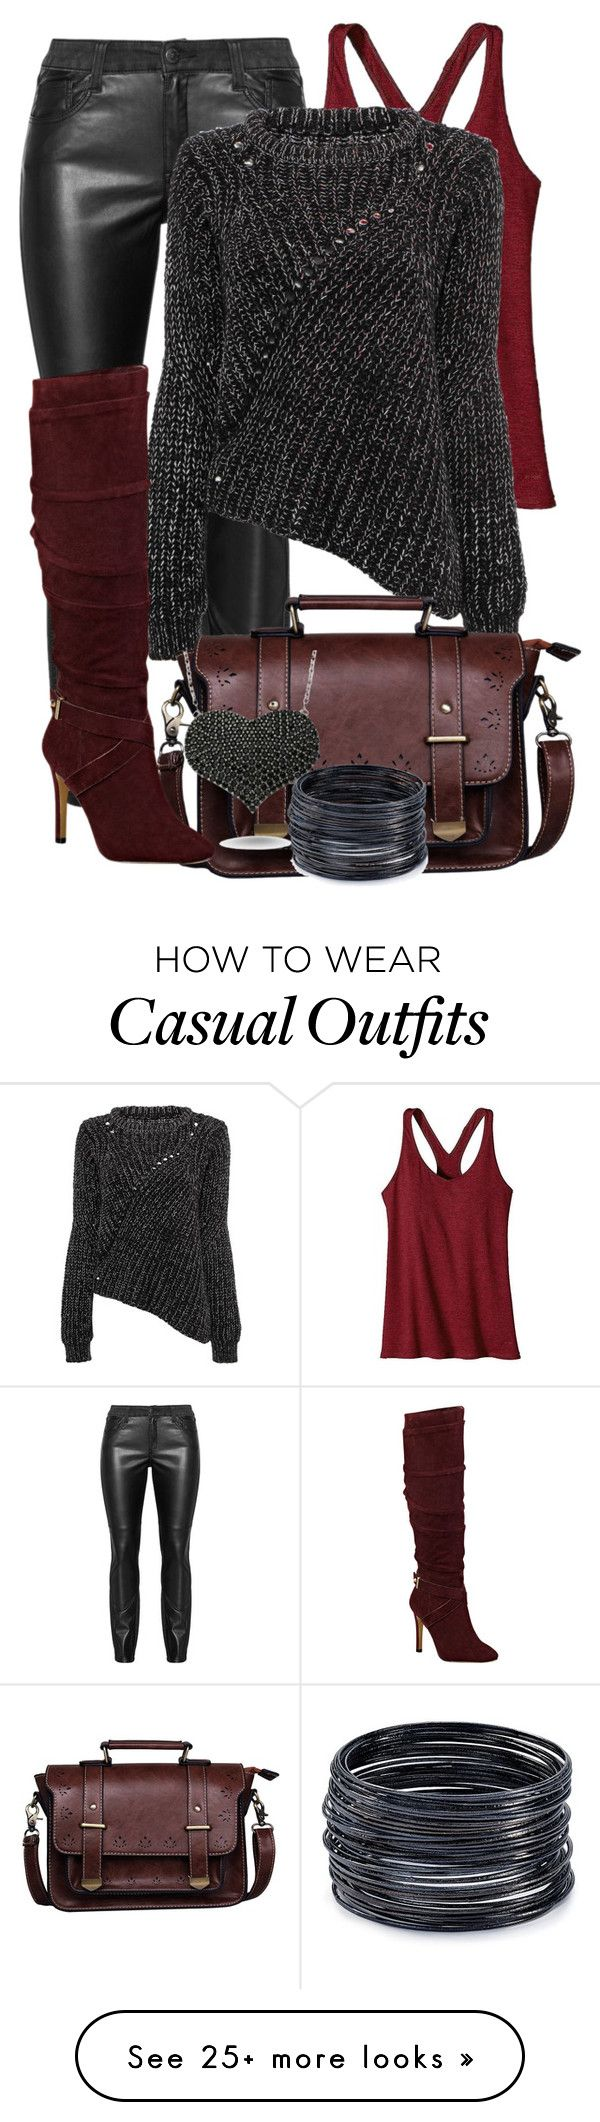 """casual"" by alice-fortuna on Polyvore featuring Patagonia, GUESS, Amorium, ABS by Allen Schwartz, women's clothing, women's fashion, women, female, woman and misses"